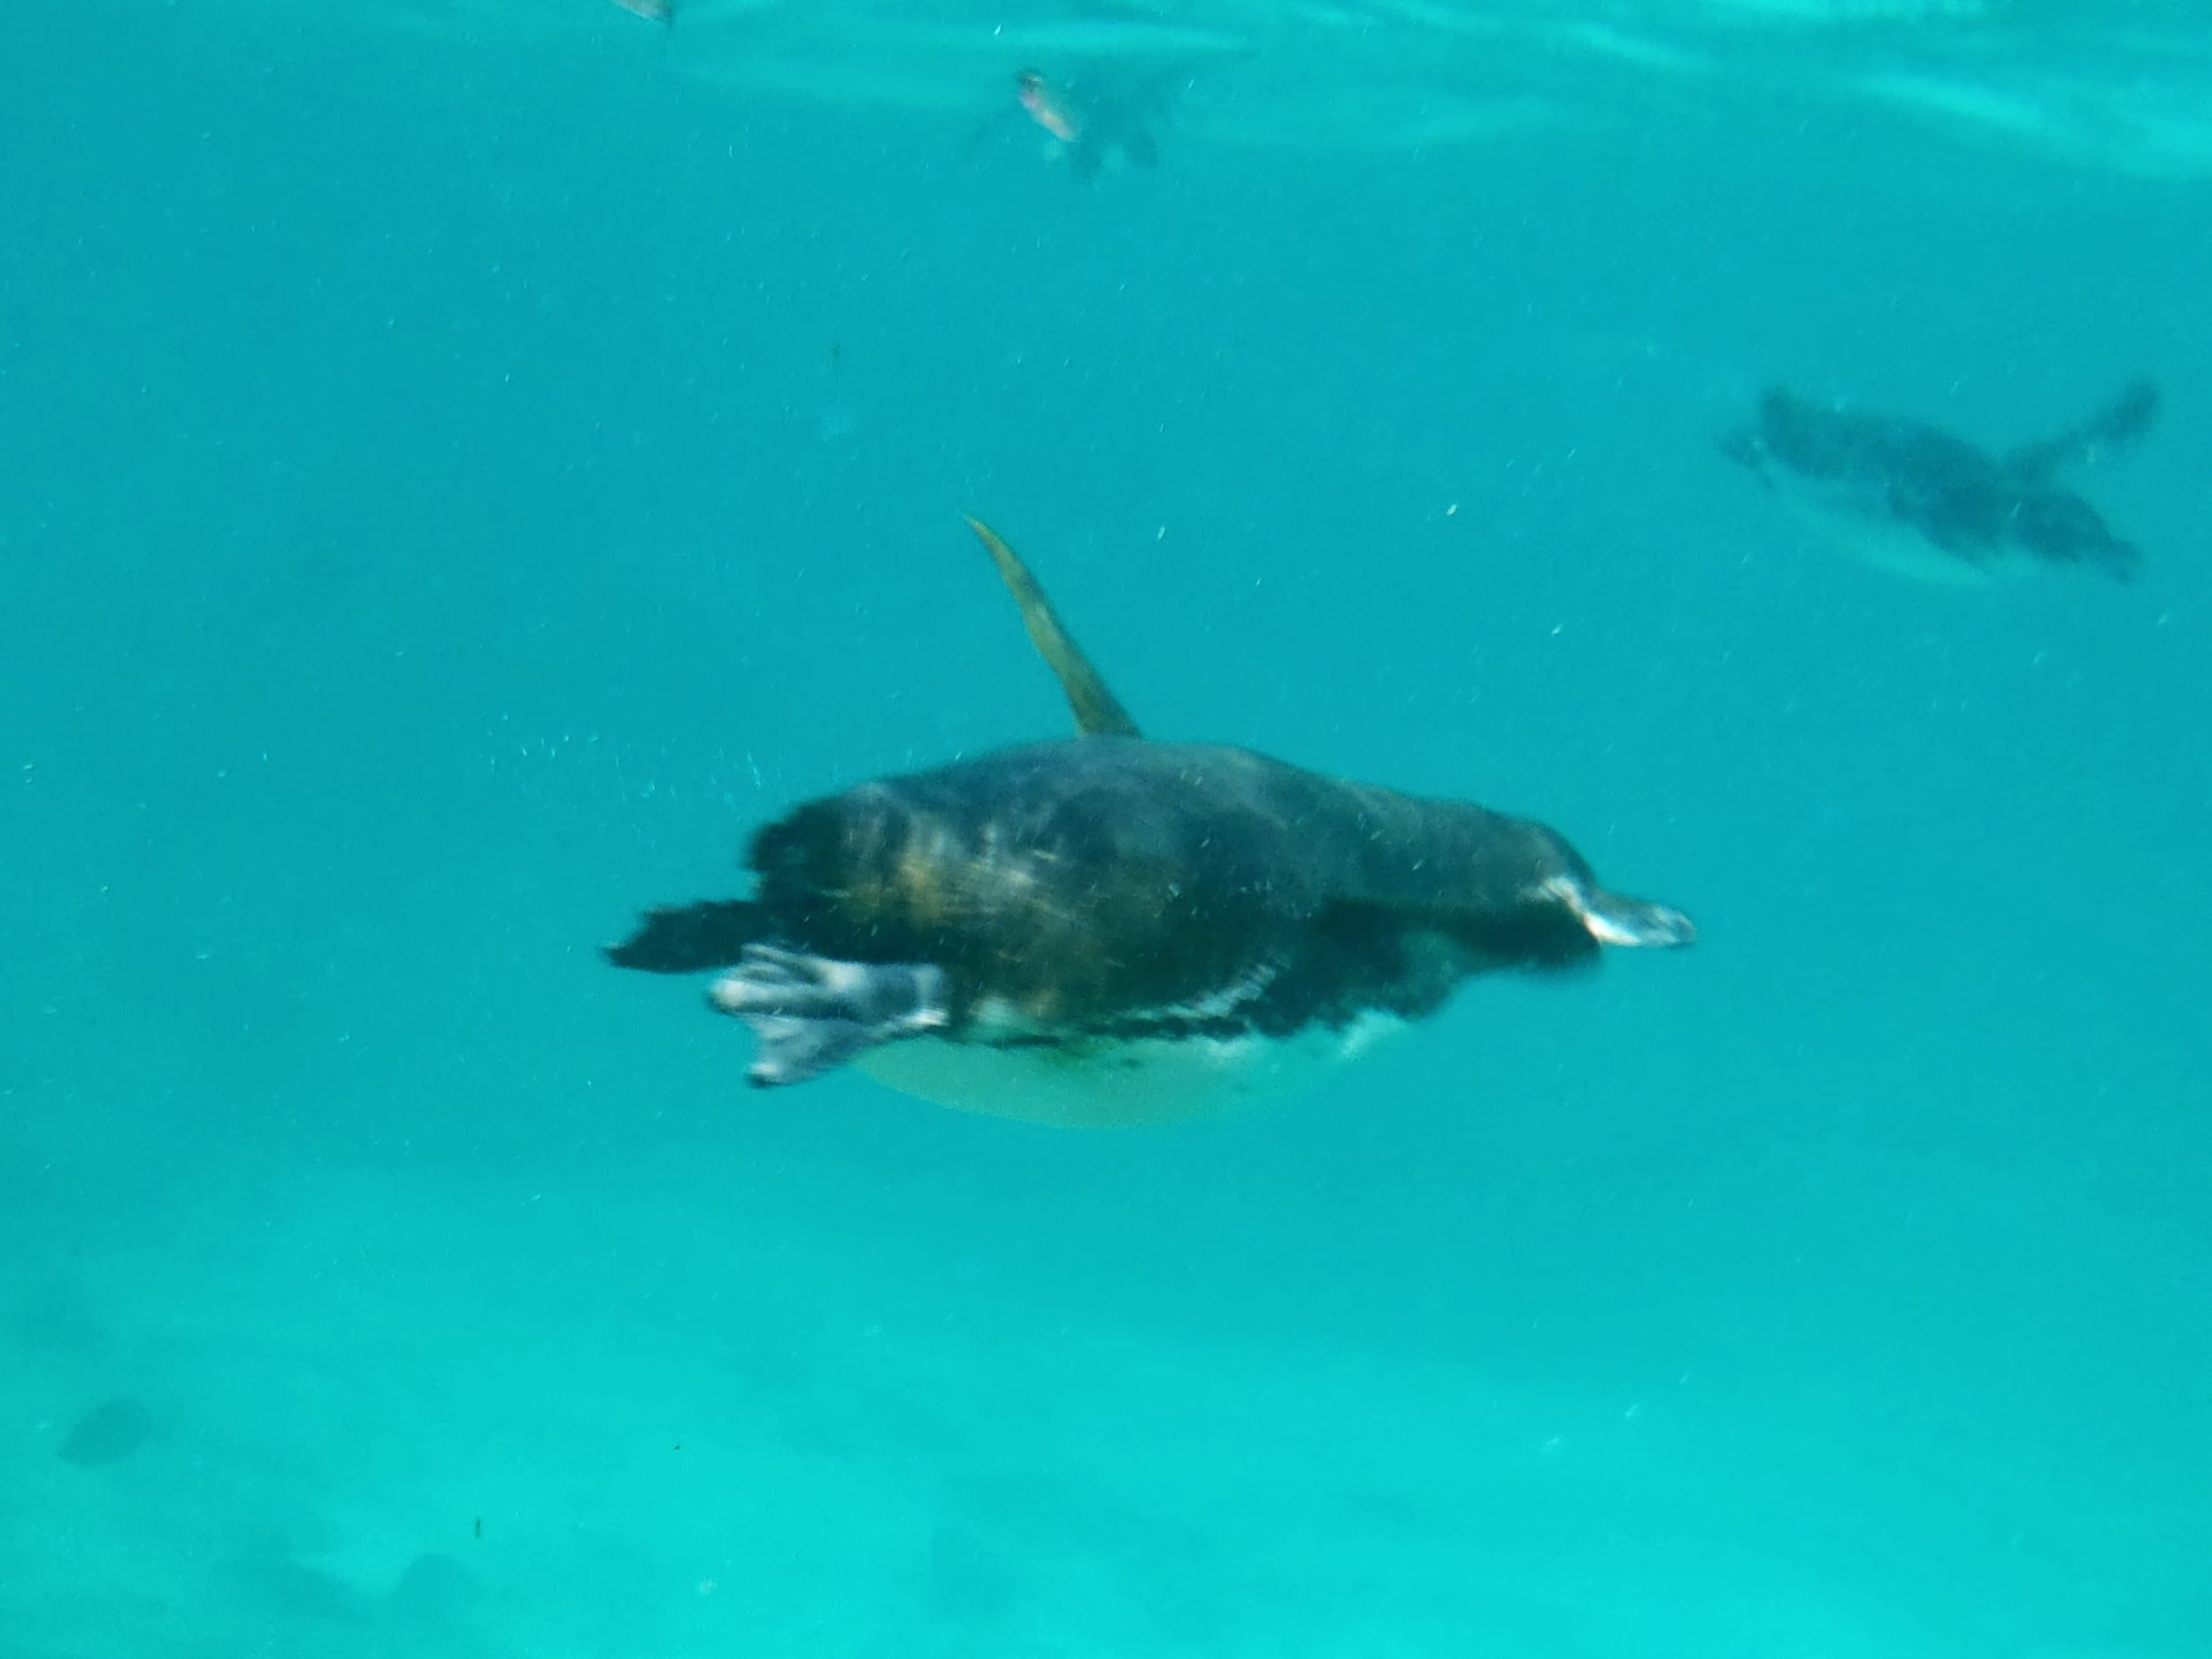 These penguins flew by us, showing off their grace and character under the water.